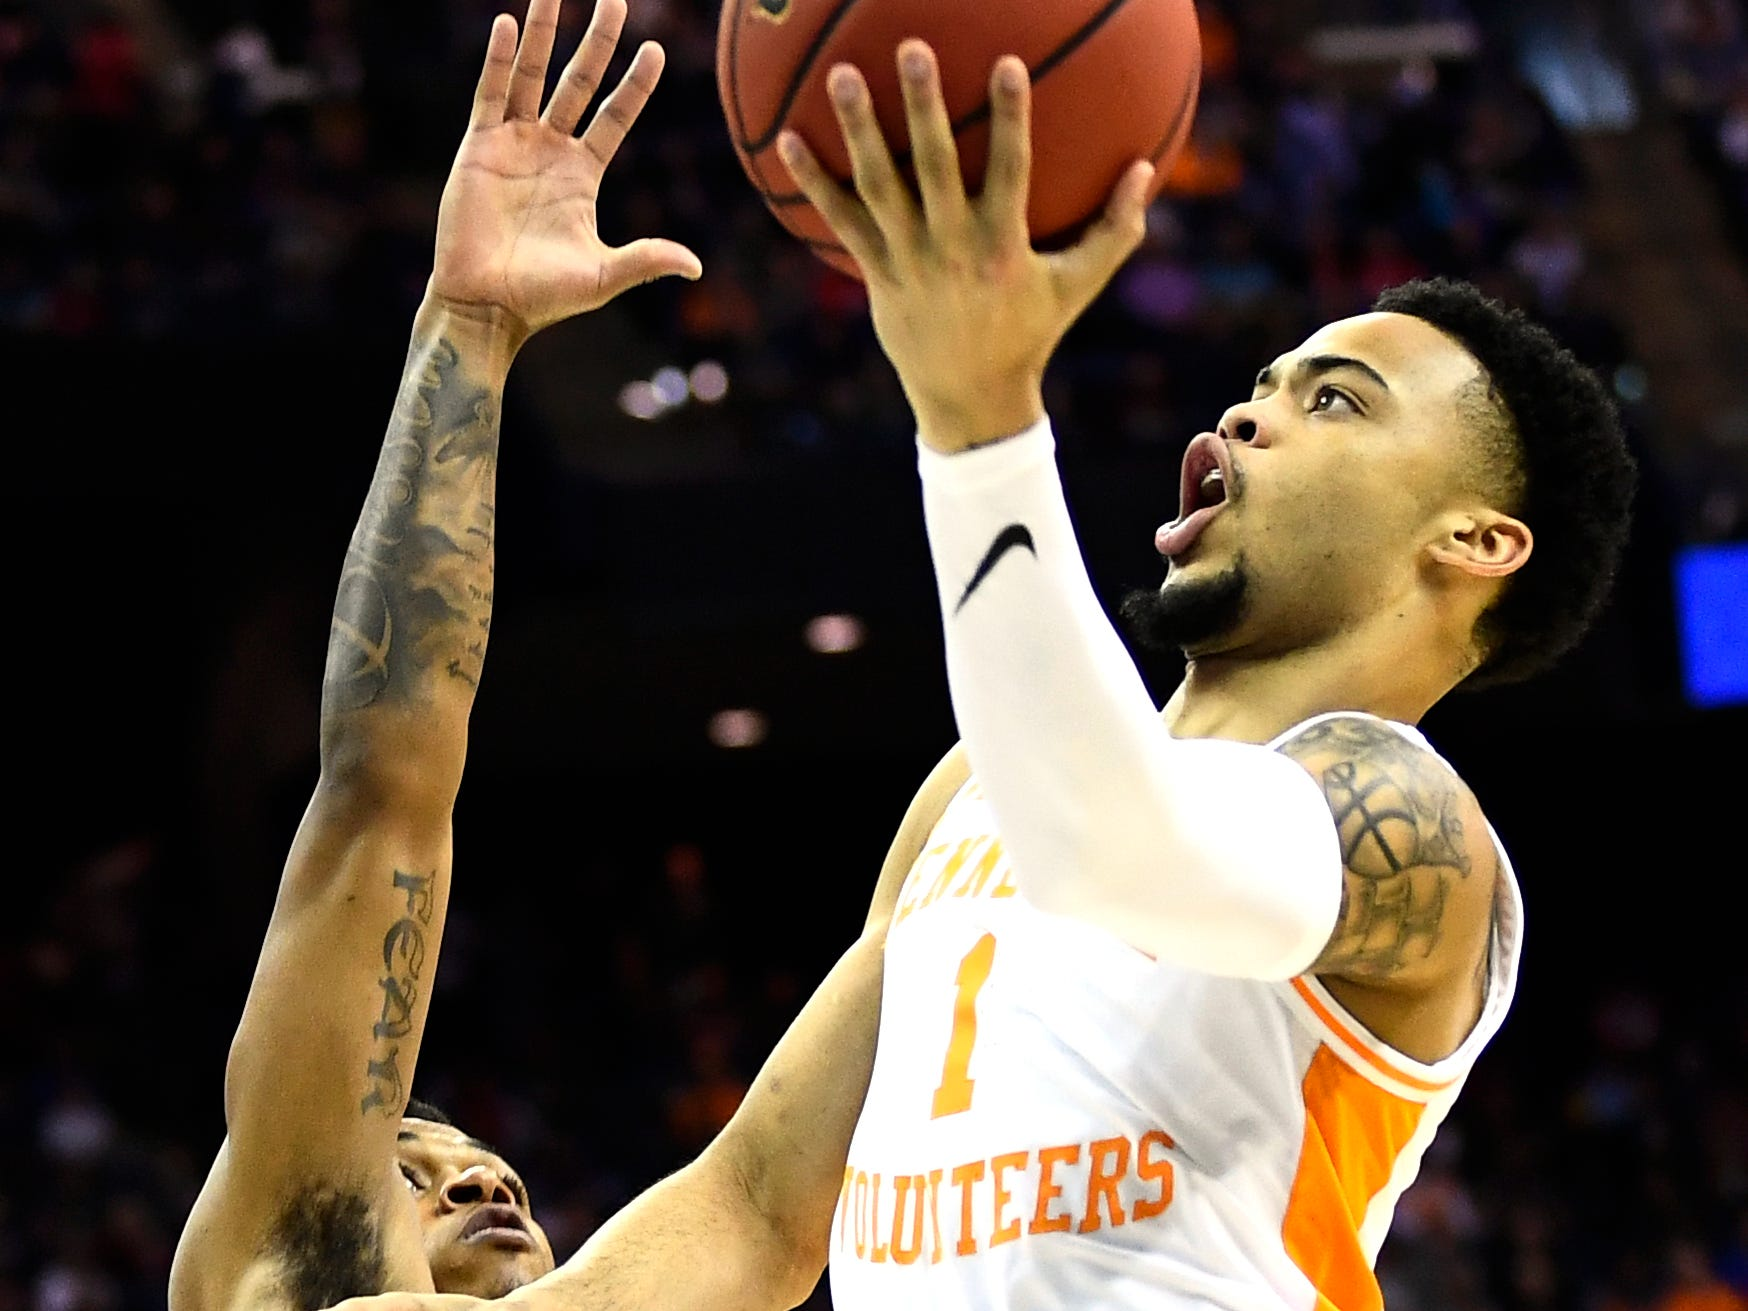 Tennessee guard Lamonte Turner (1) shoots for two over Colgate guard Jordan Burns (1) during the first round game of the NCAA Tournament at Nationwide Arena in Columbus, Ohio, on Friday, March 22, 2019.